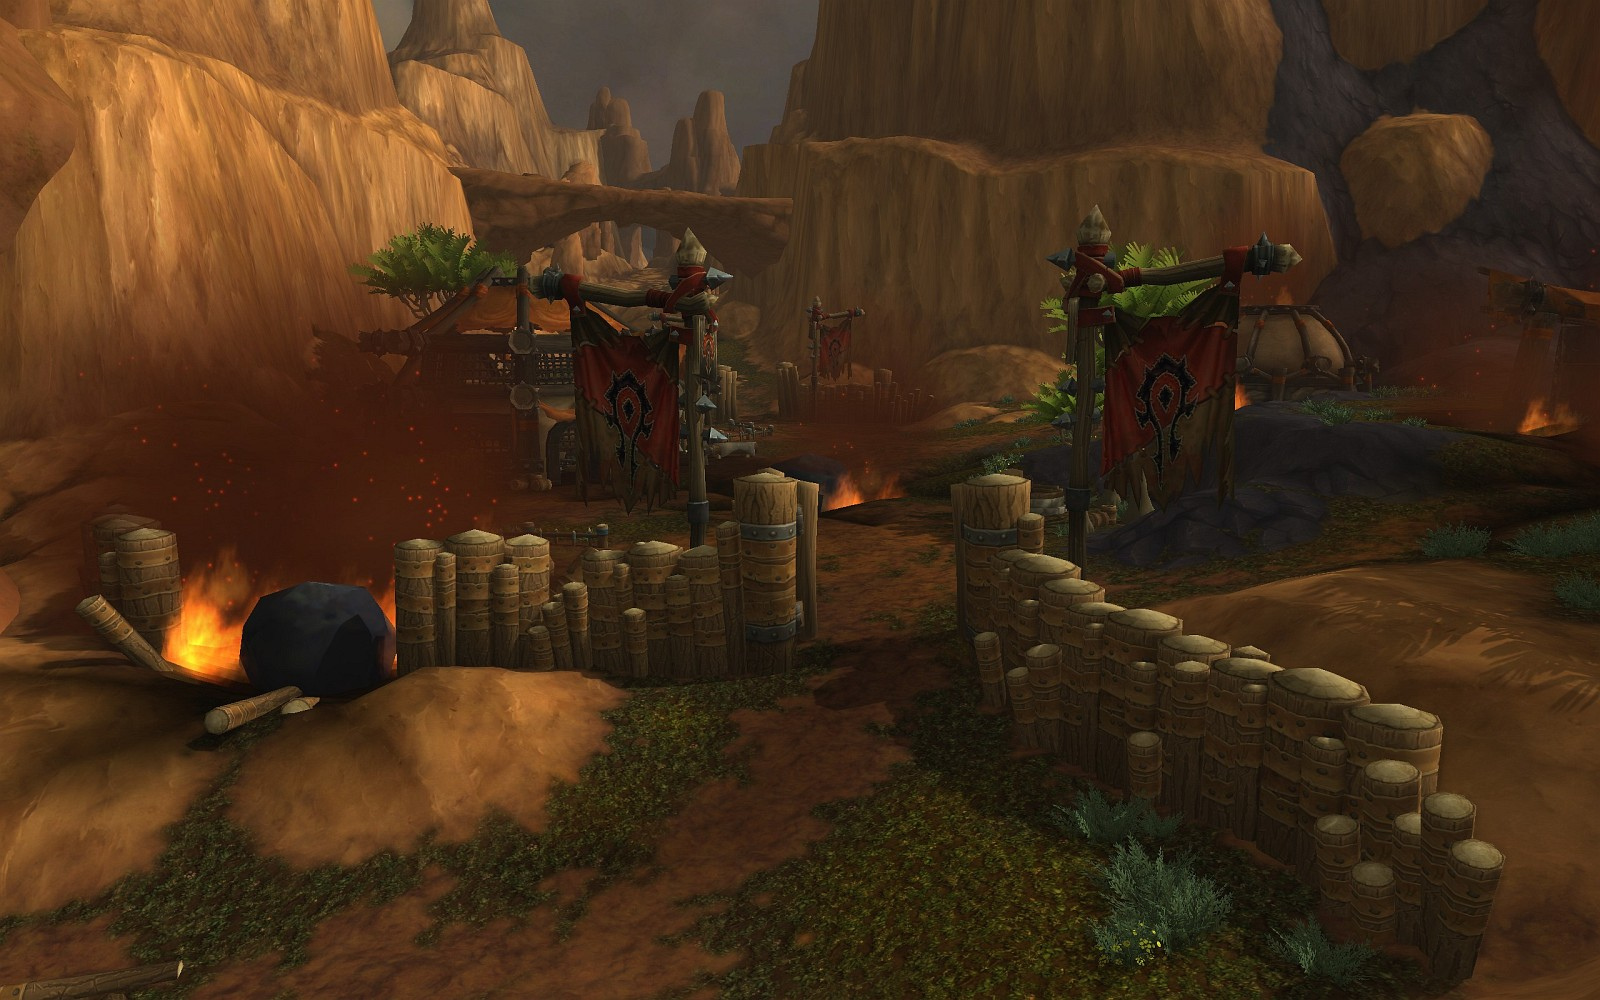 Screenshot de l'extension World of Warcraft: Warlords of Draenor.